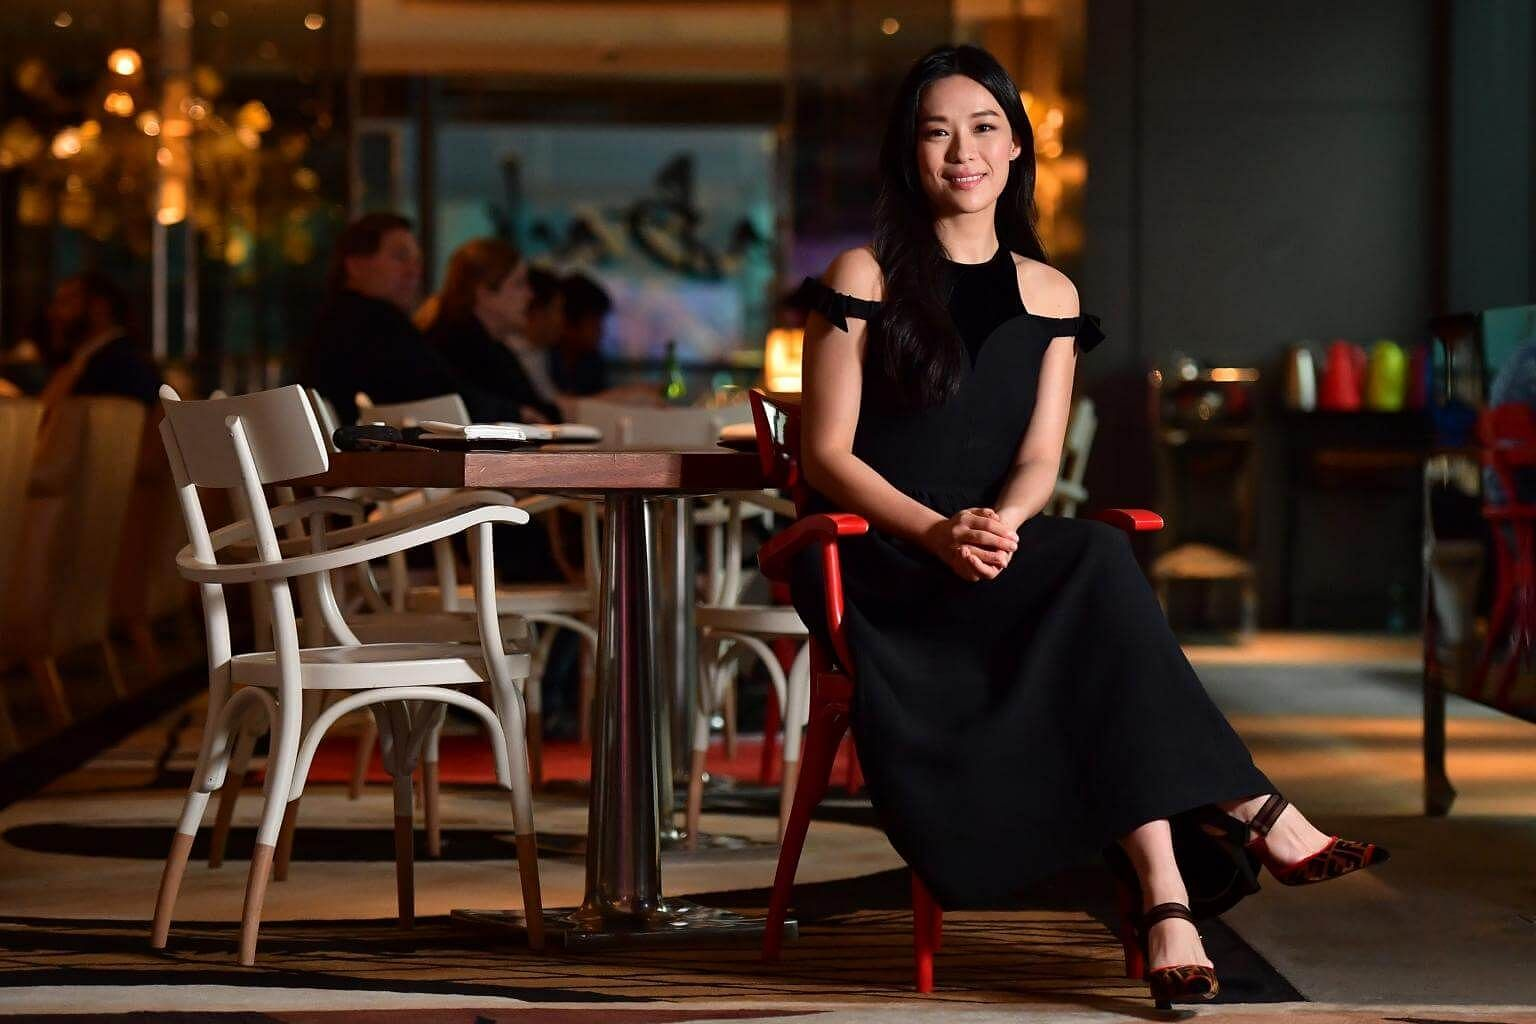 From Primary 4 to Secondary 4, Rebecca Lim was overweight, and she was in the Trim and Fit weight-loss programme at school. Rebecca Lim's early years on TV were tough because her command of Mandarin was poor. The actress saw this as a glaring problem